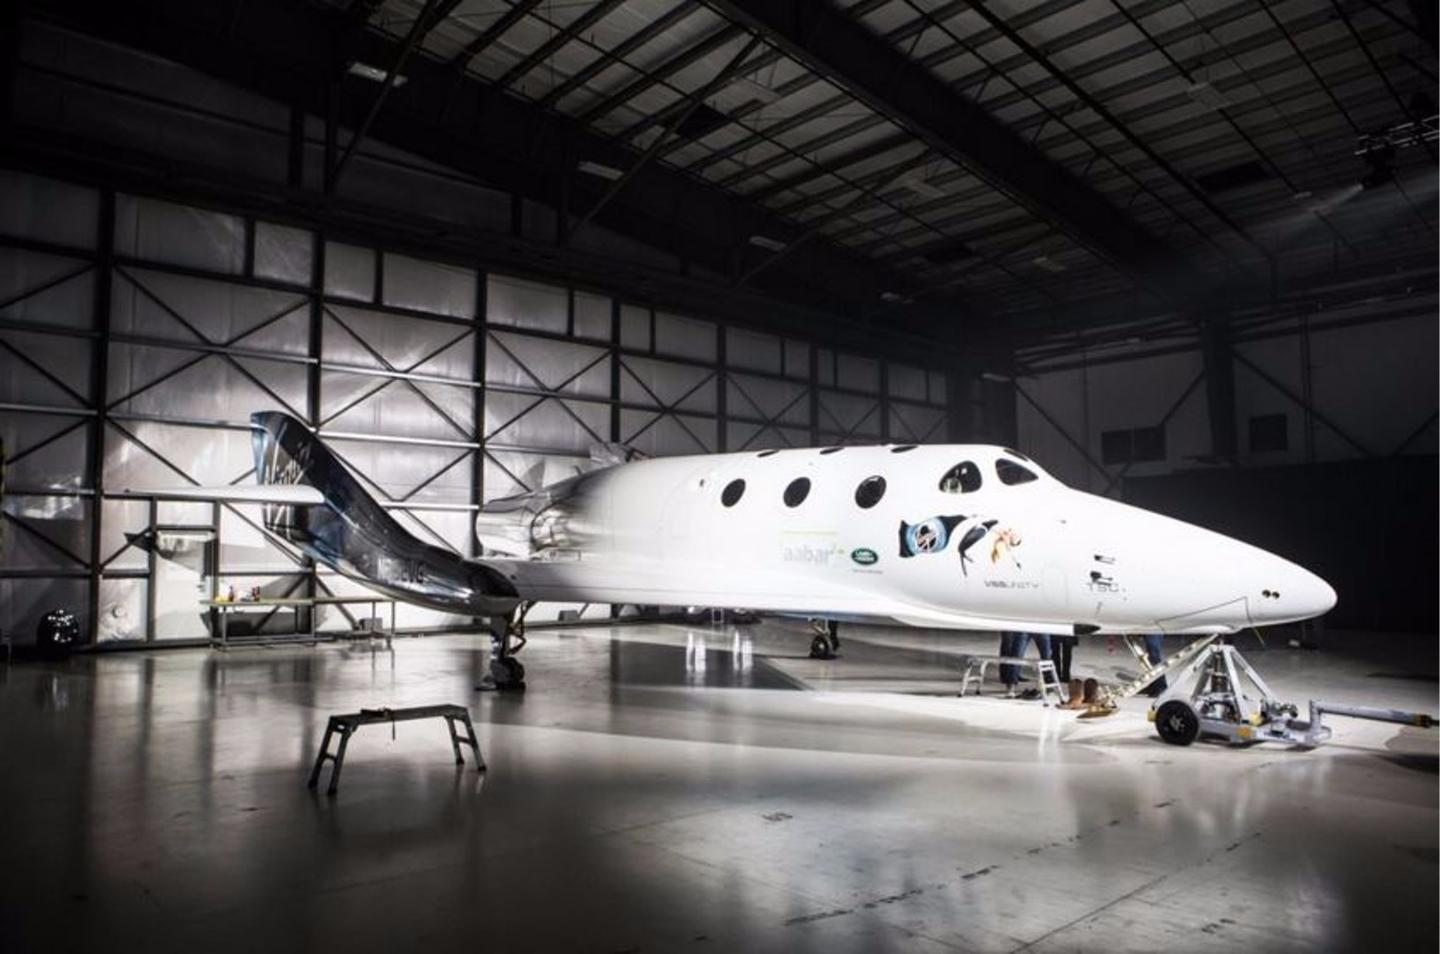 The new spacecraft replaces the previous SpaceShipTwo, which was lost in a test flight accident